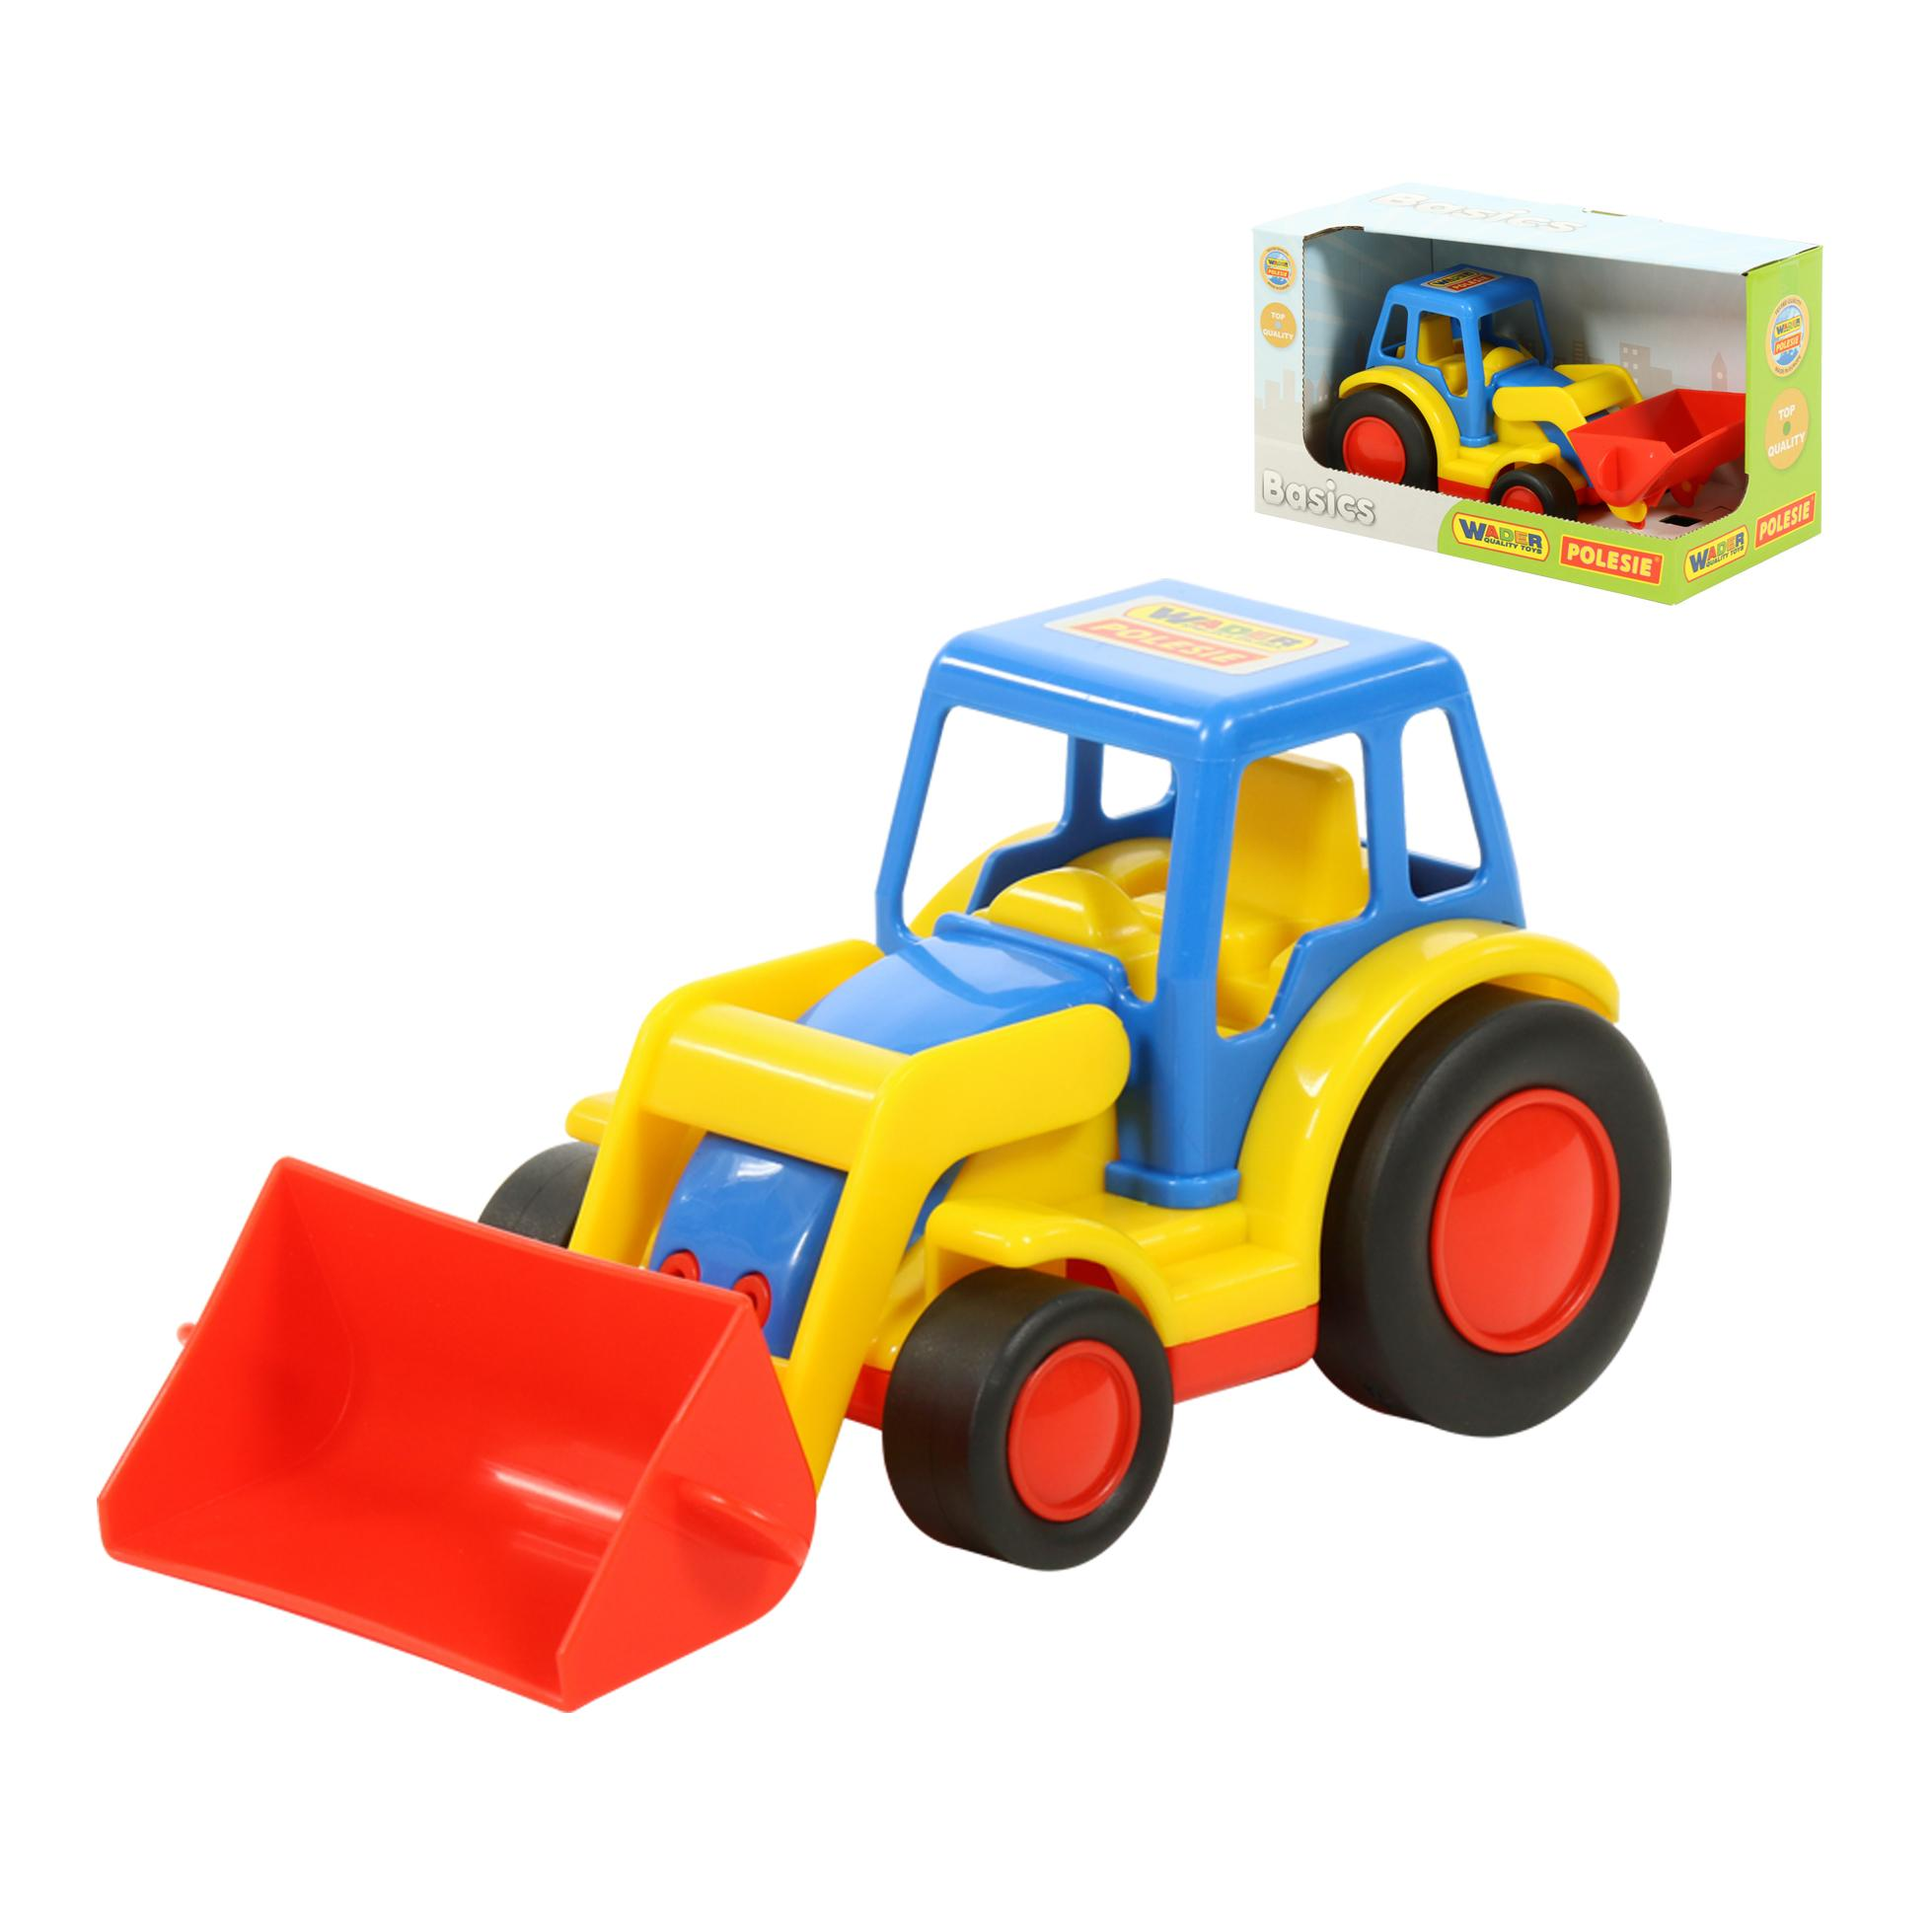 Other Occupations Toys wader Wet tractor loader (box) games for boys and girls for kids toy for children Pretend Play cars profession